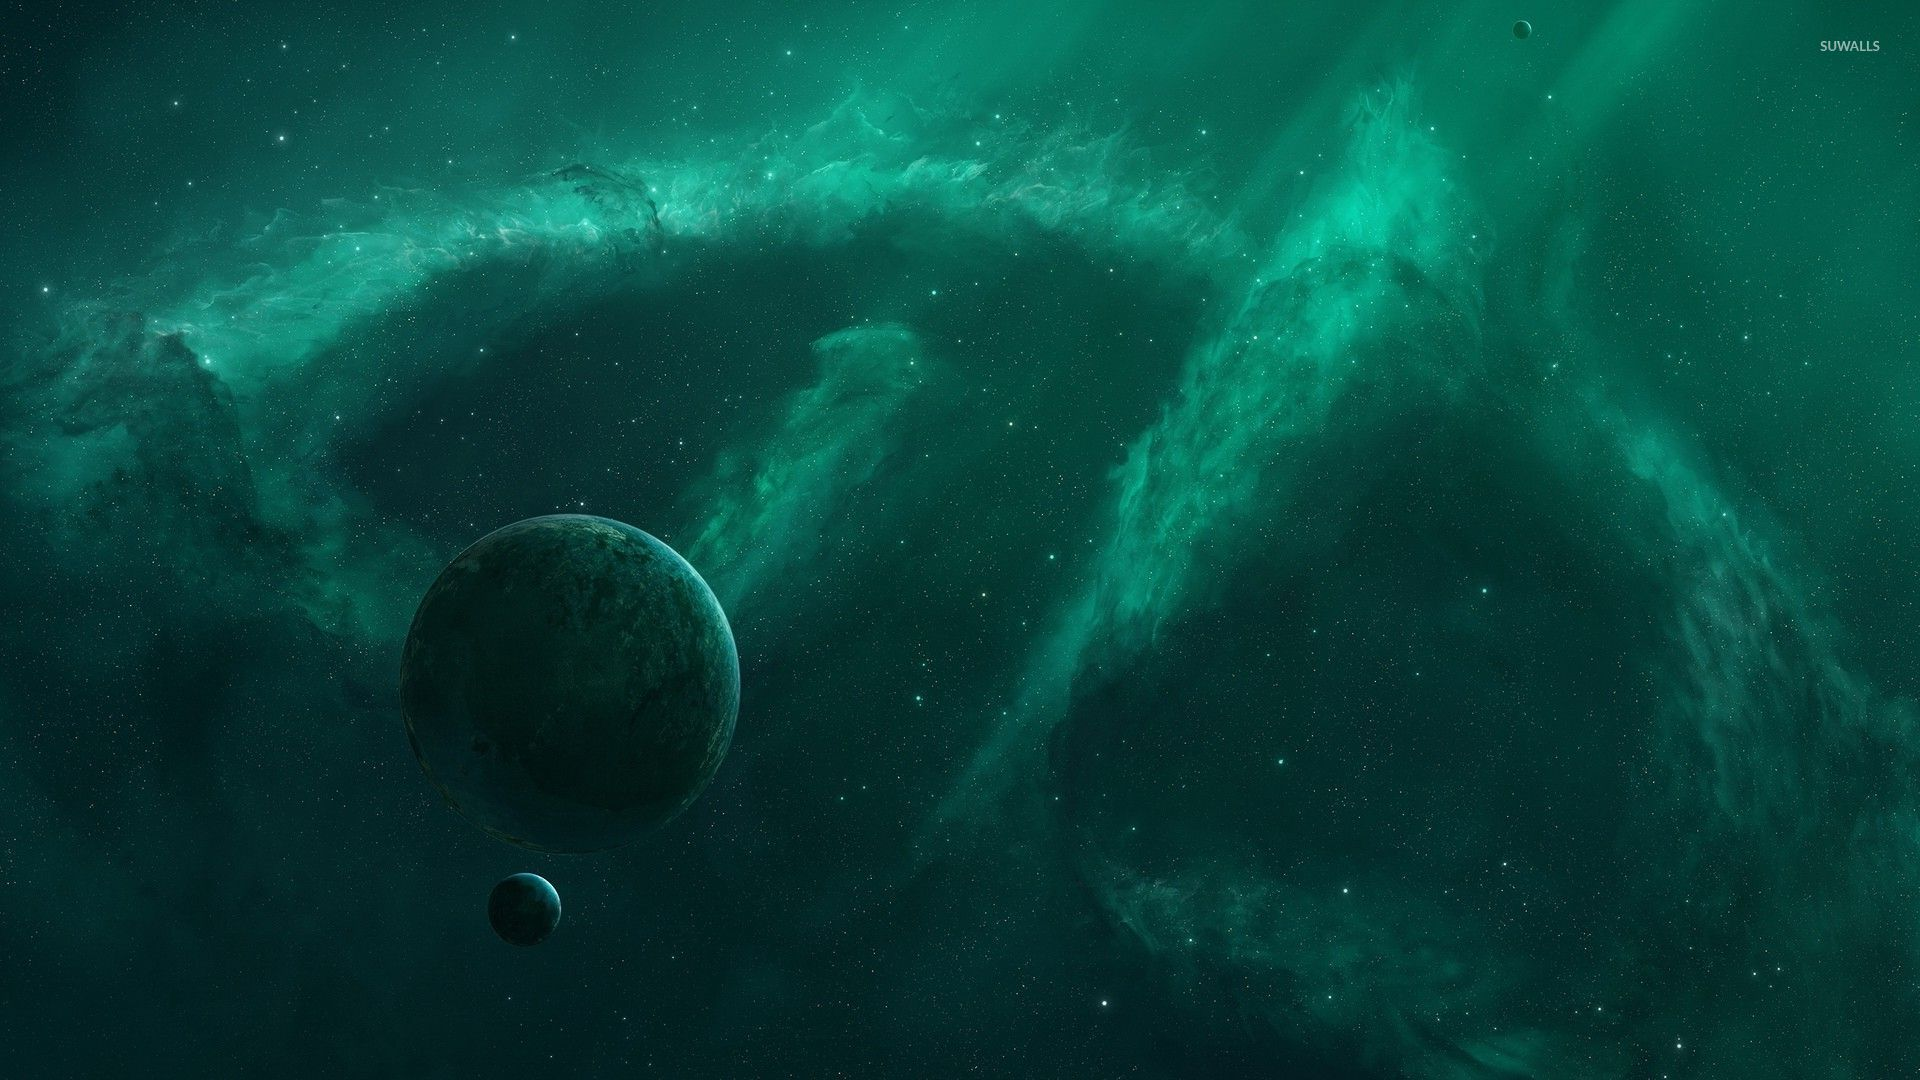 astronomy blue and green backgrounds - photo #6